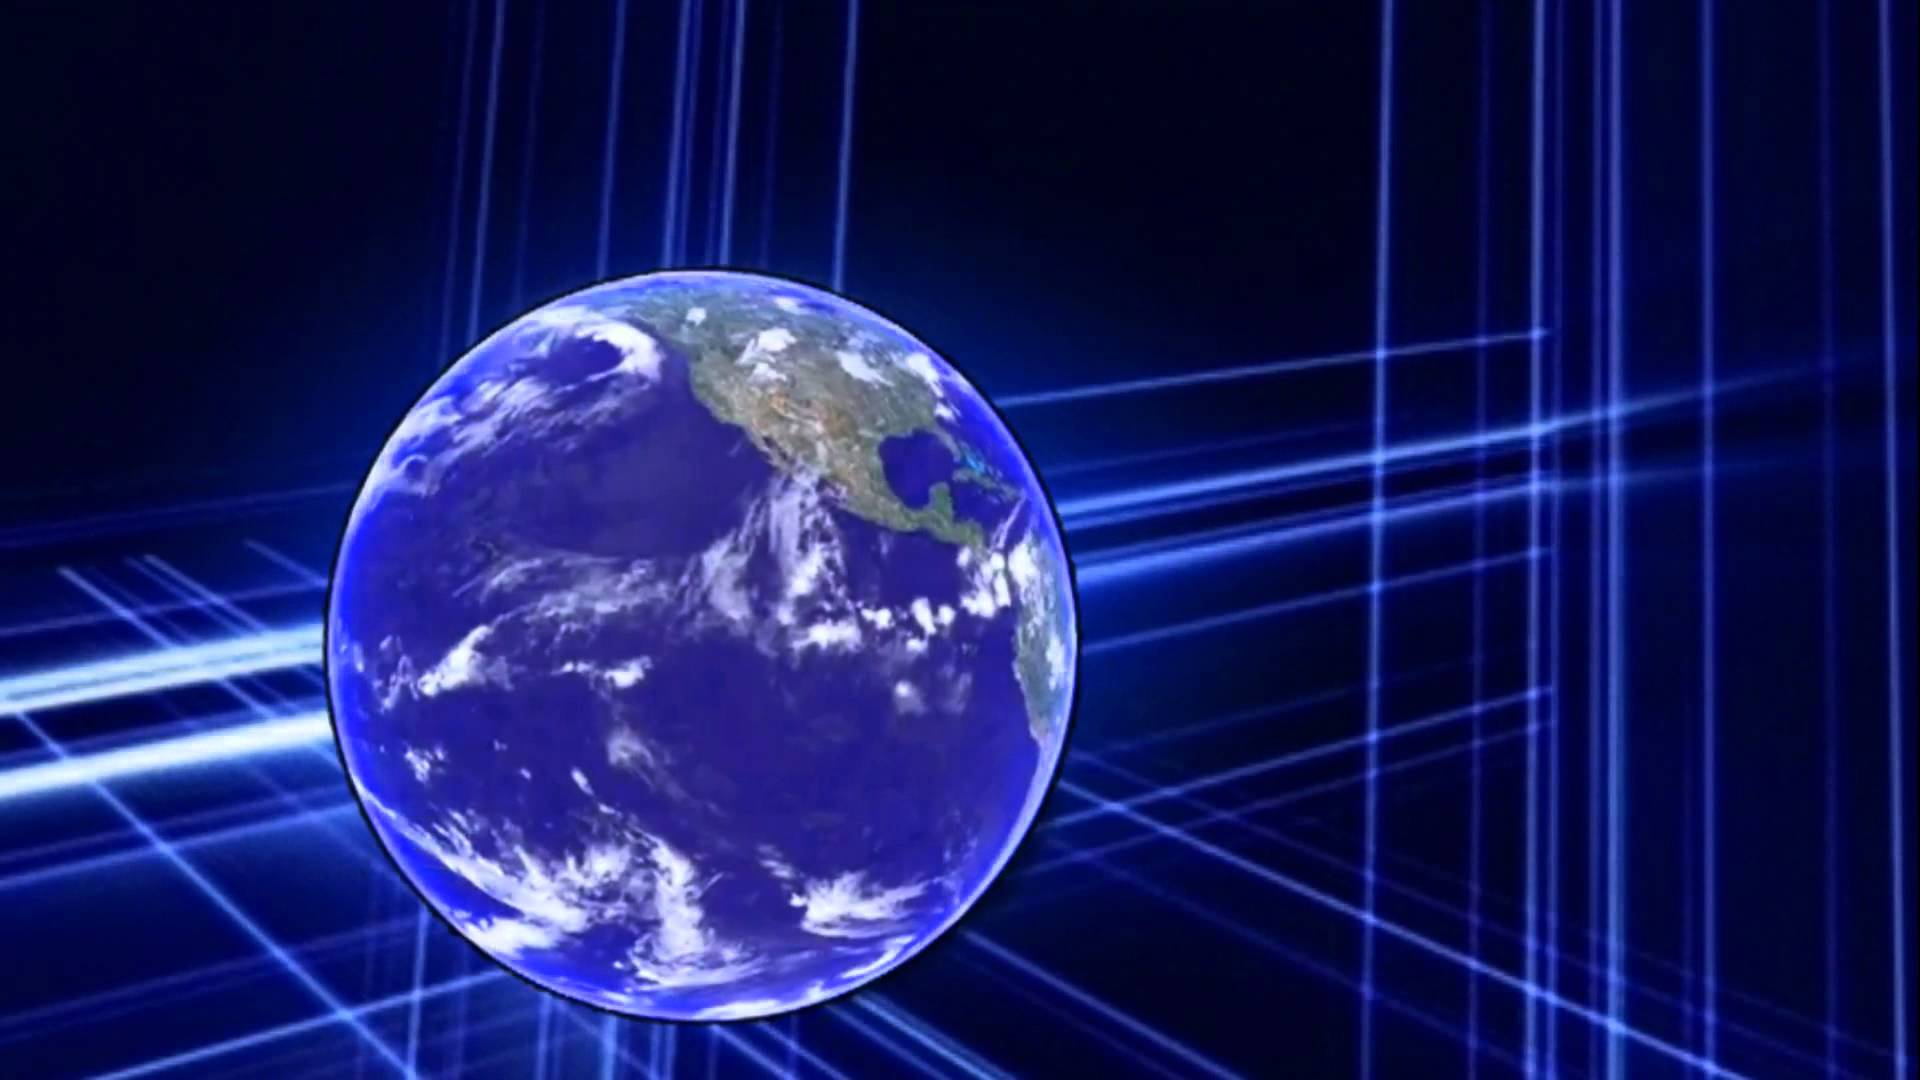 Free Download Spinning Earth Background Video 1080p Hd Stock Video